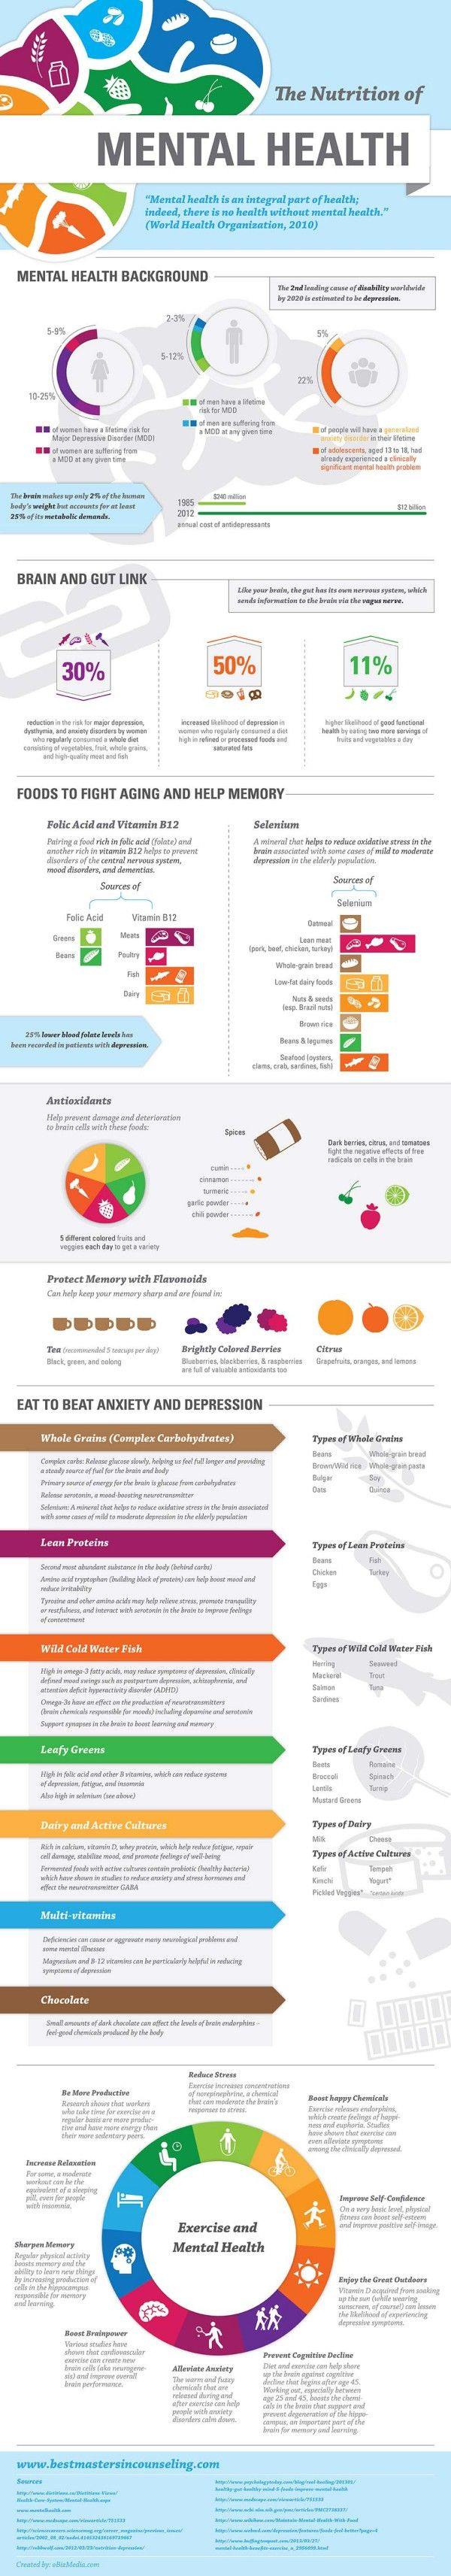 Mental health and nutrition (infographic) via holykaw.alltop.co…